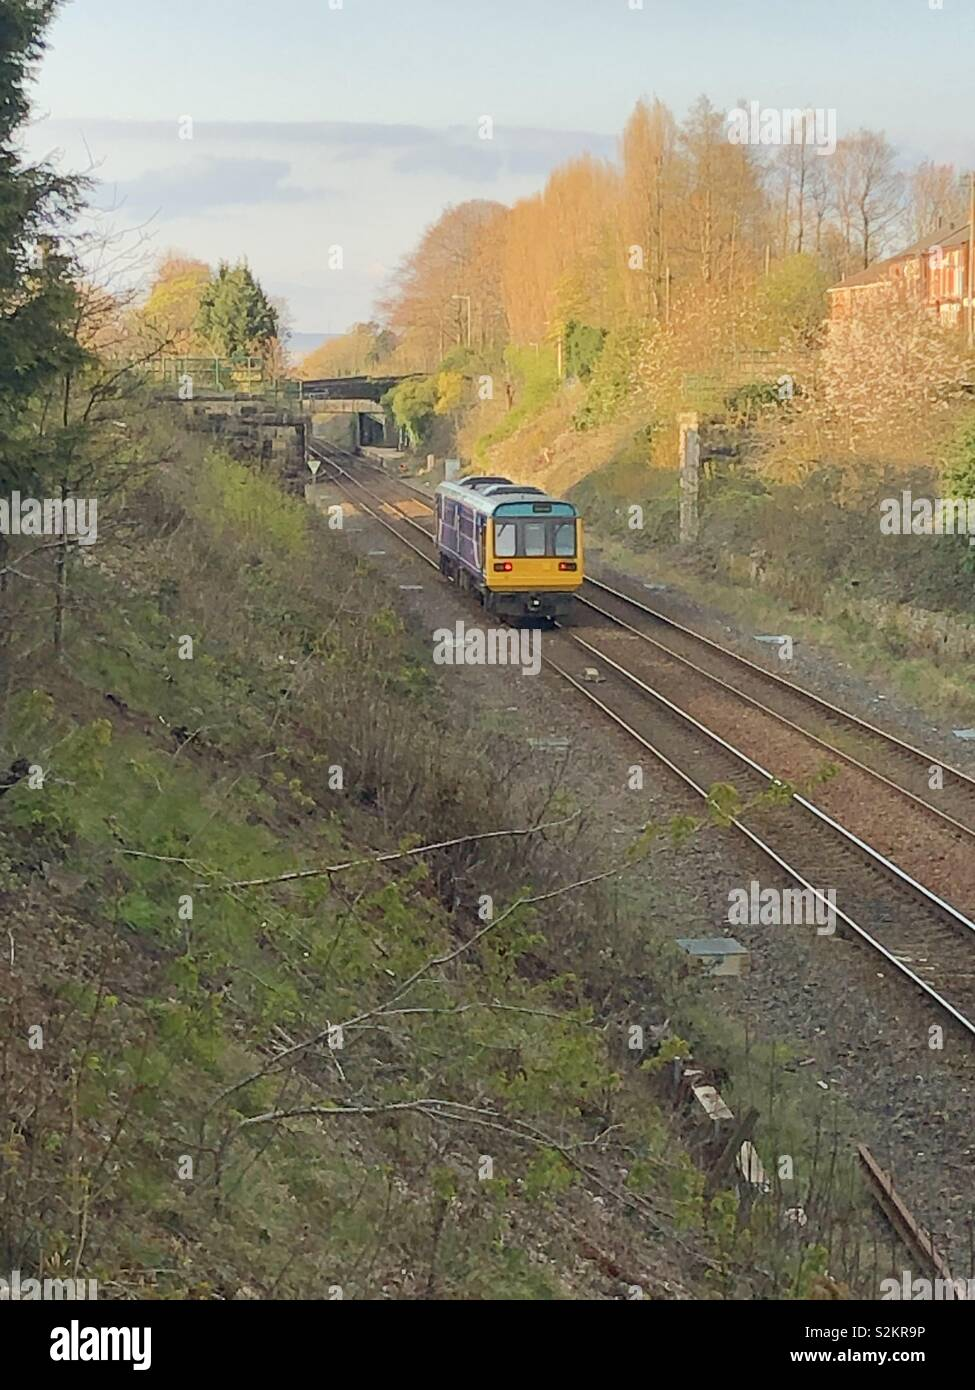 Class 142 approaches Woodley, Stockport - Stock Image